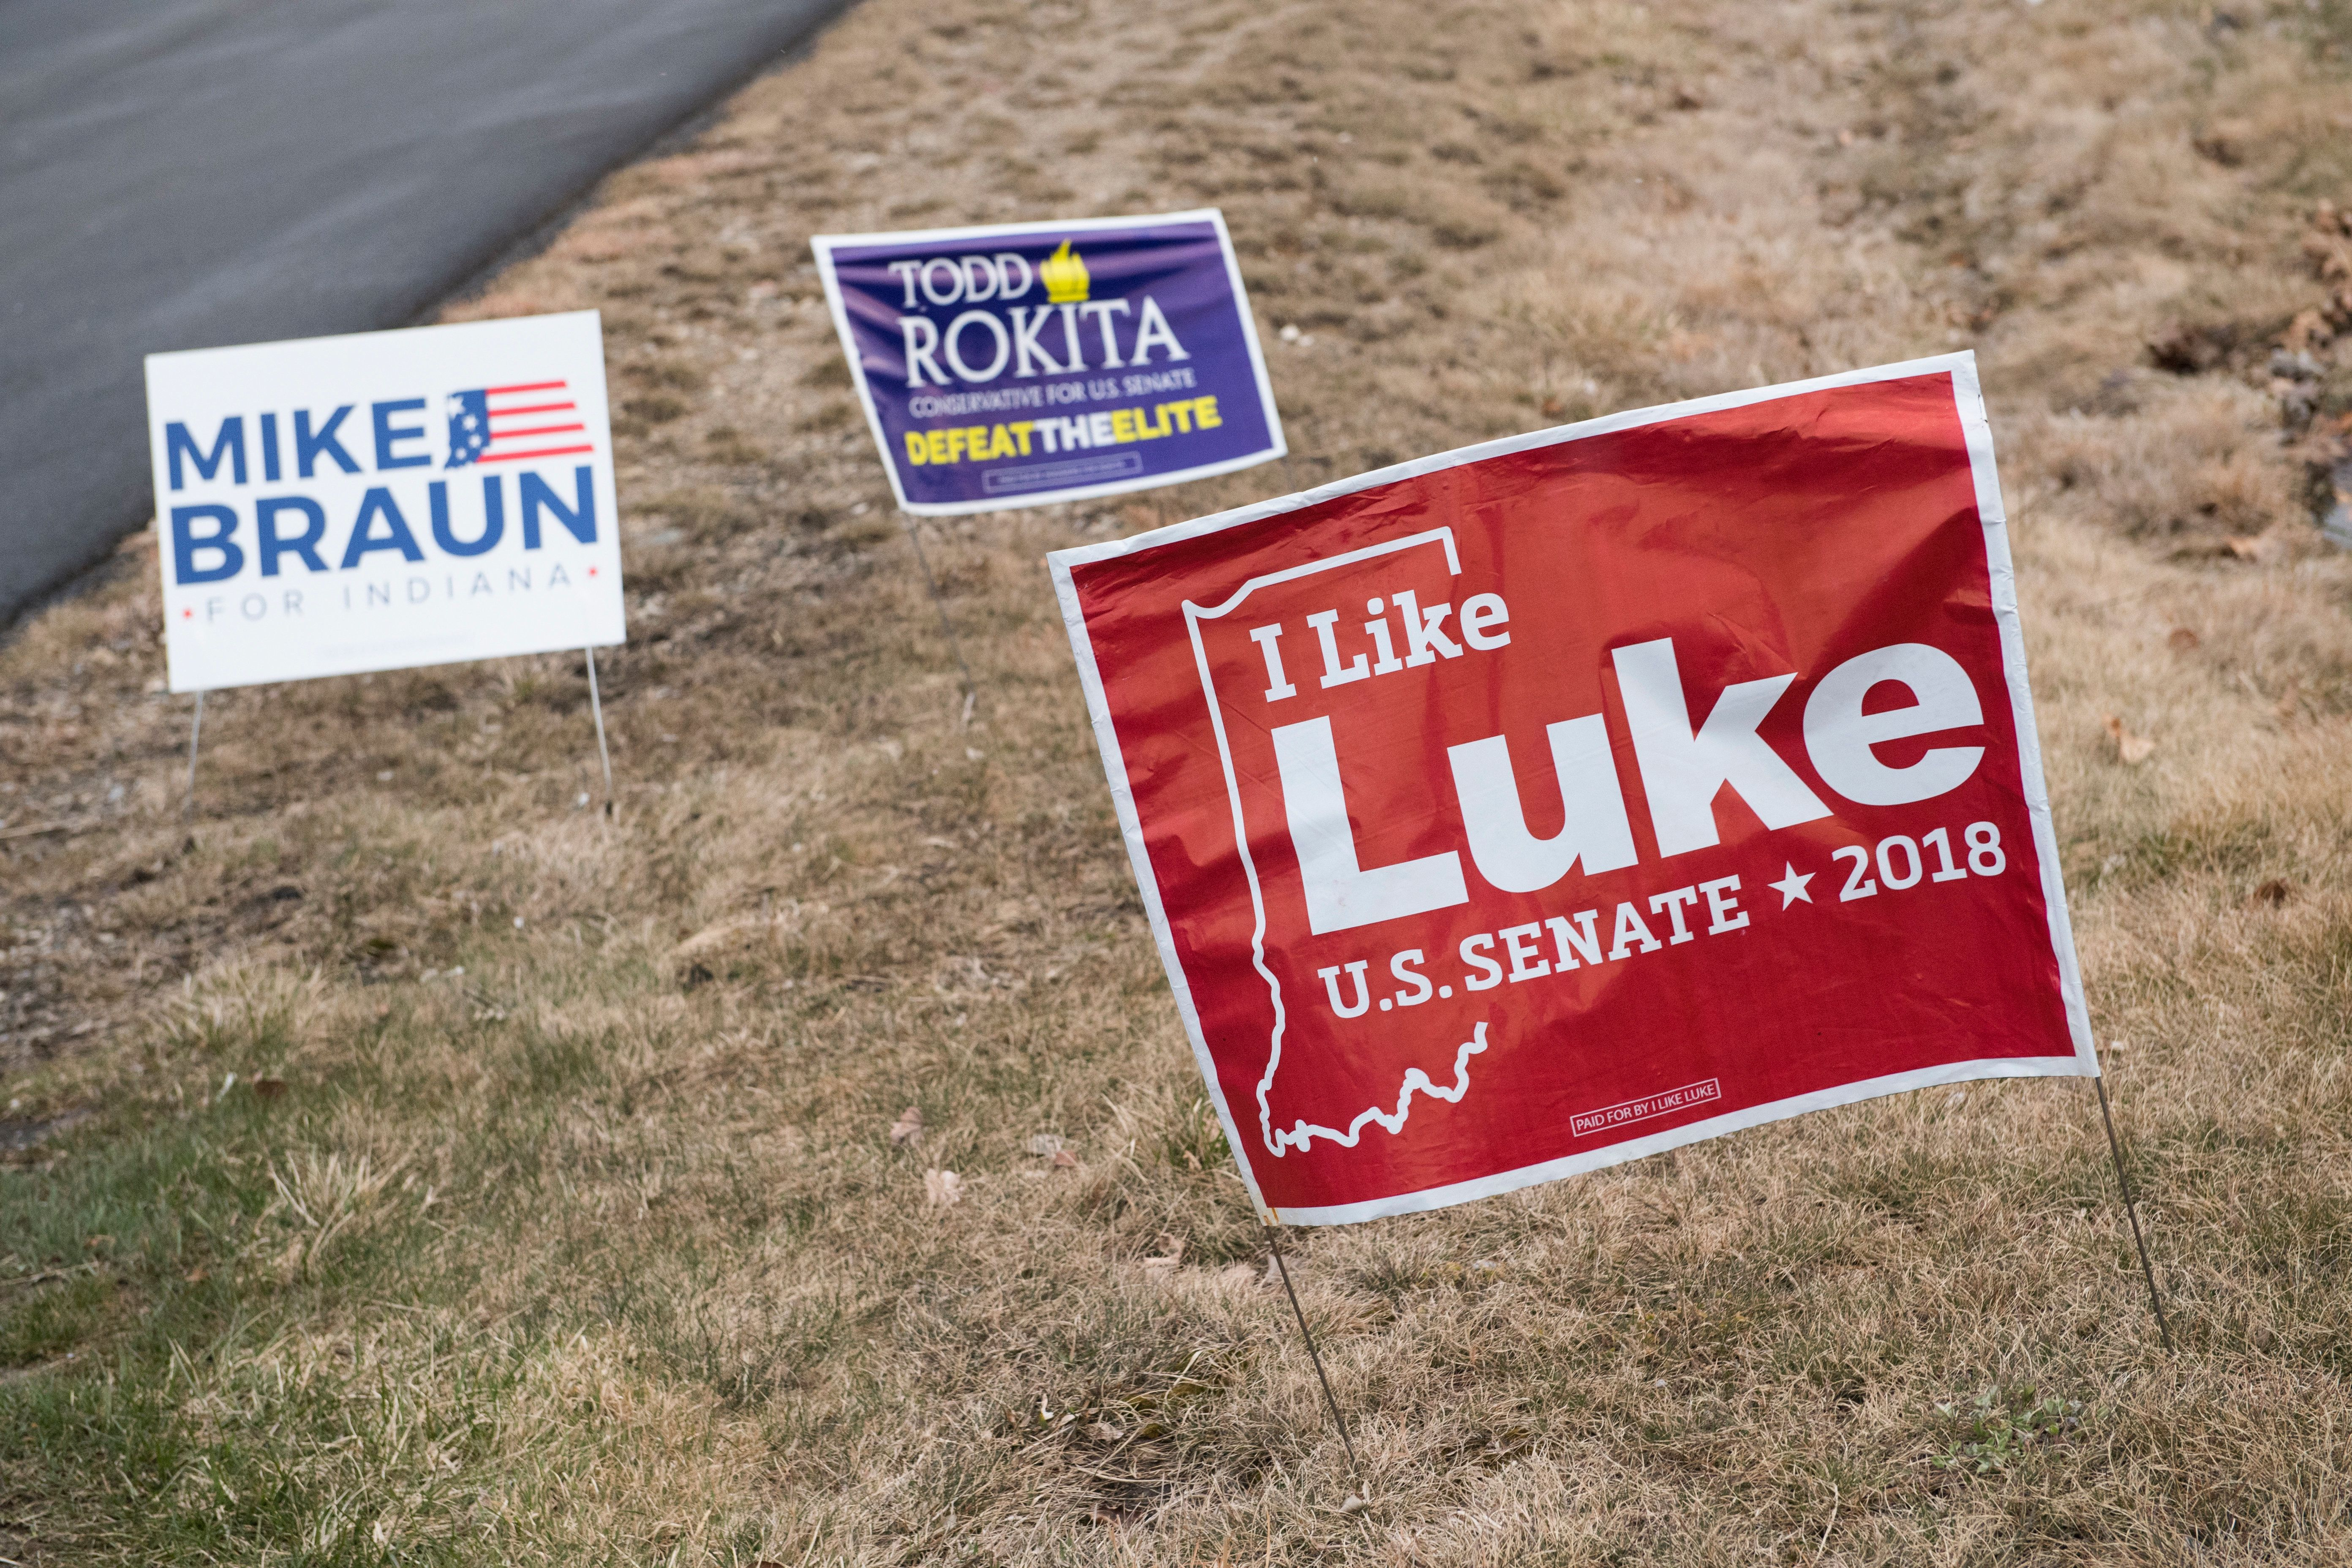 UNITED STATES - APRIL 4: Signs for Mike Braun, Reps. Todd Rokita, R-Ind., and Luke Messer, R-Ind., who are running for the Republican nomination for Senate in Indiana, are seen outside the Steuben County Lincoln Day Dinner in Angola, Ind., on April 4, 2018. (Photo By Tom Williams/CQ Roll Call)